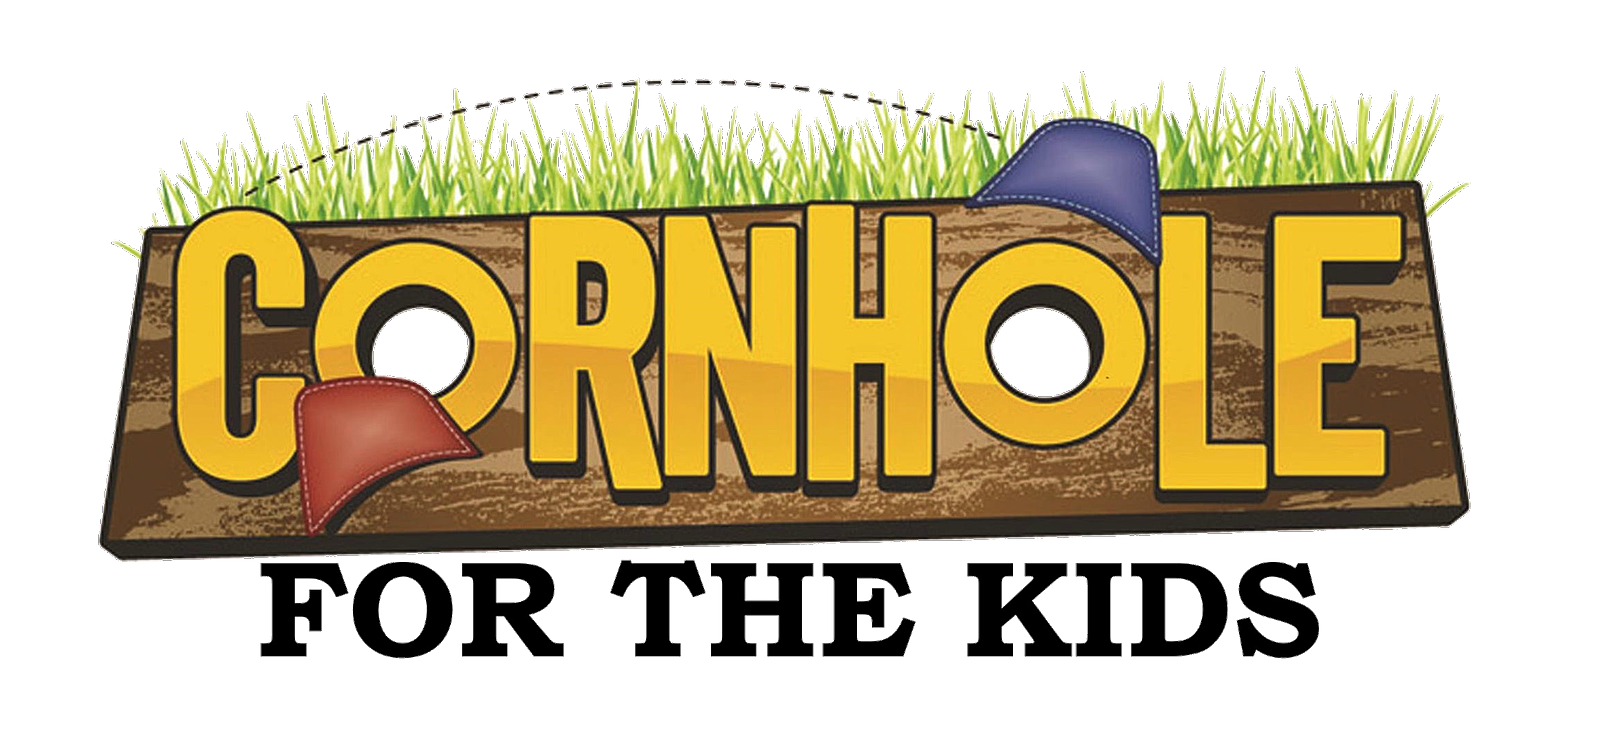 Corn hole clipart png. Cornhole for the kids